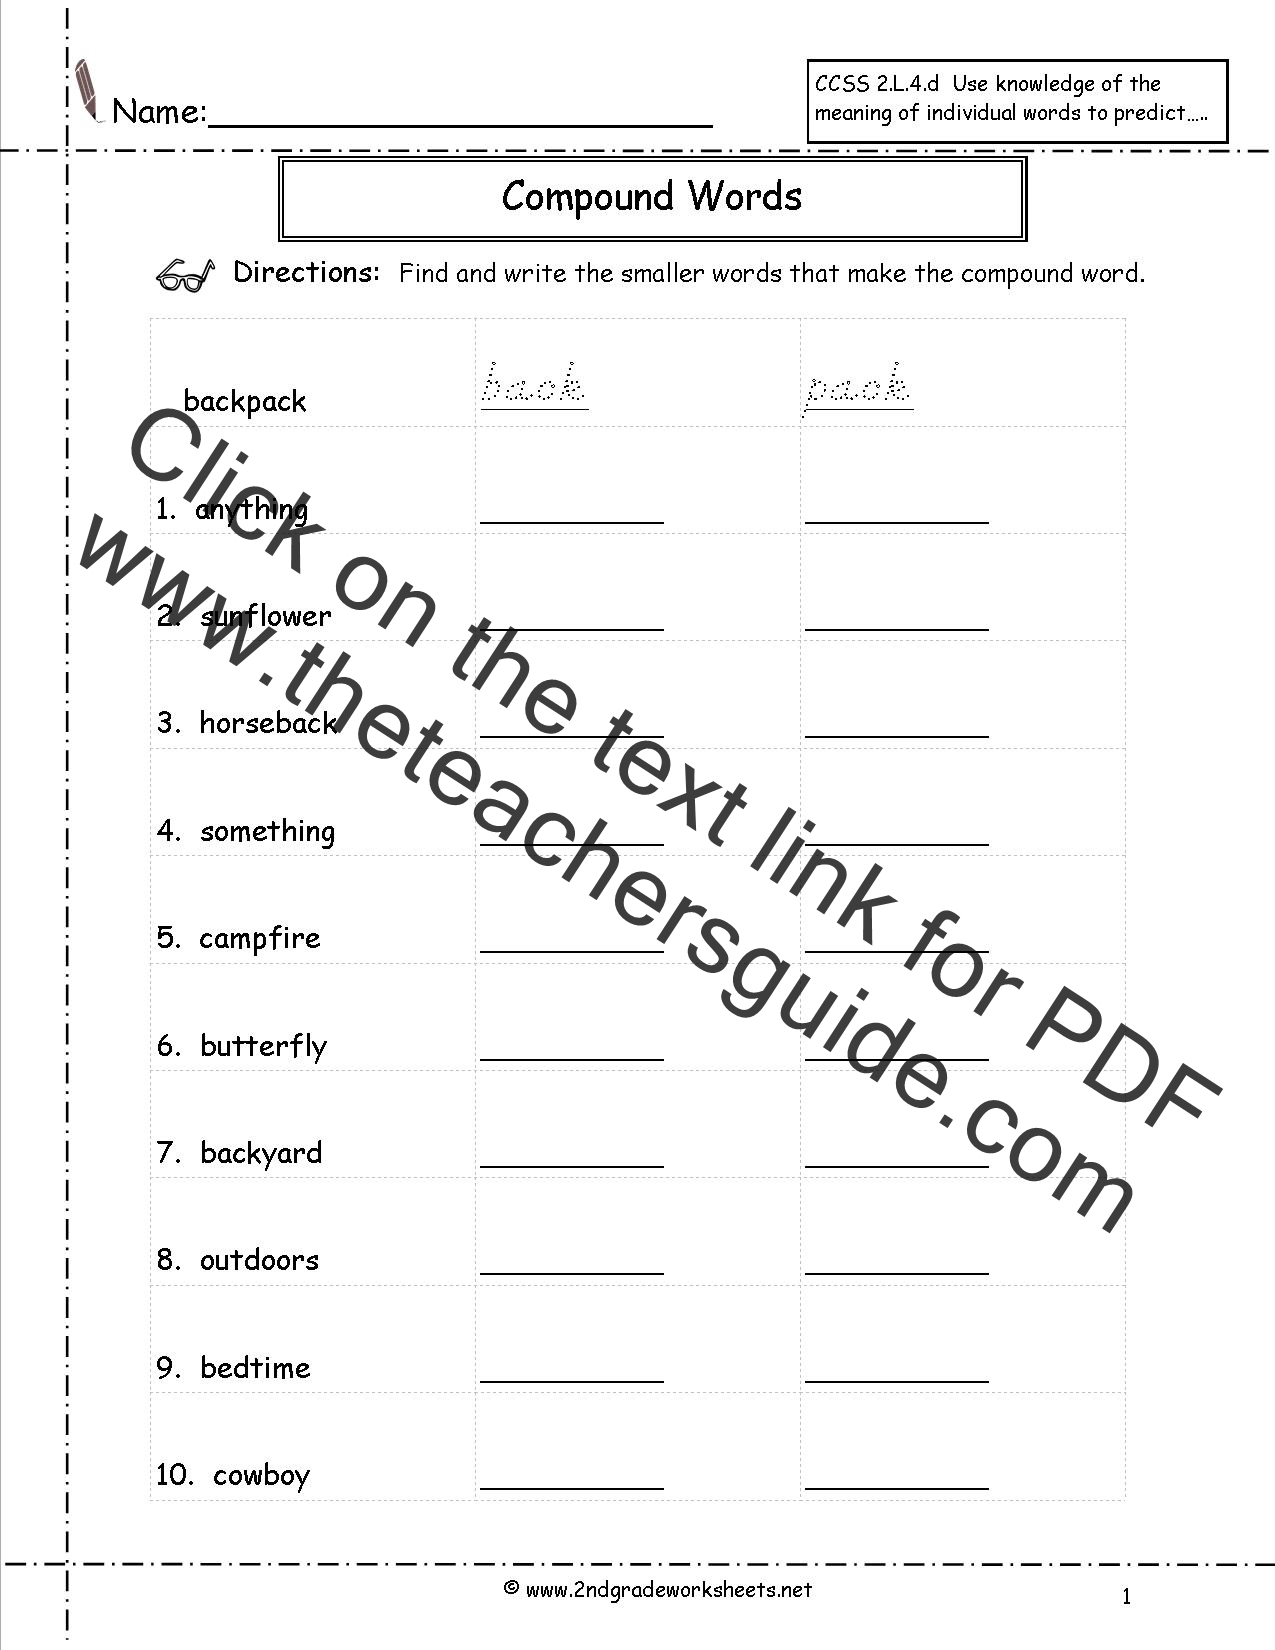 worksheet Free English Worksheets For Year 4 free languagegrammar worksheets and printouts compound words worksheets